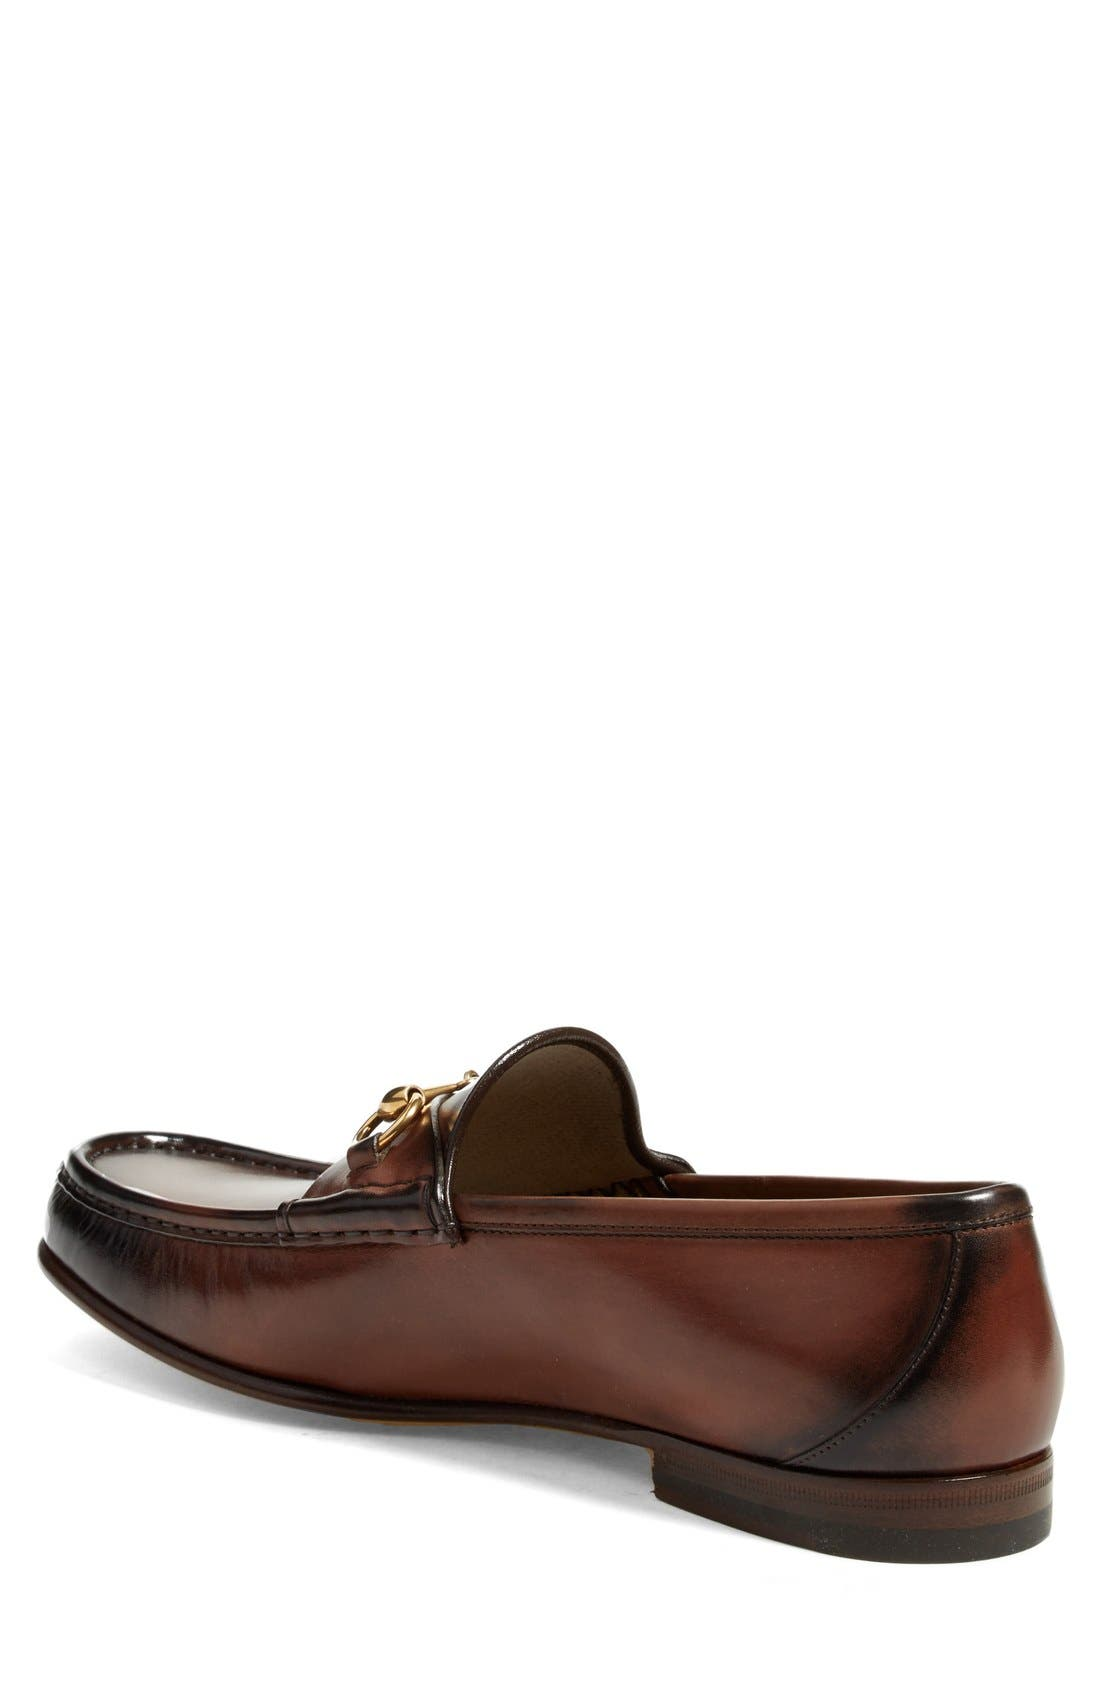 'Roos' Bit Loafer,                             Alternate thumbnail 7, color,